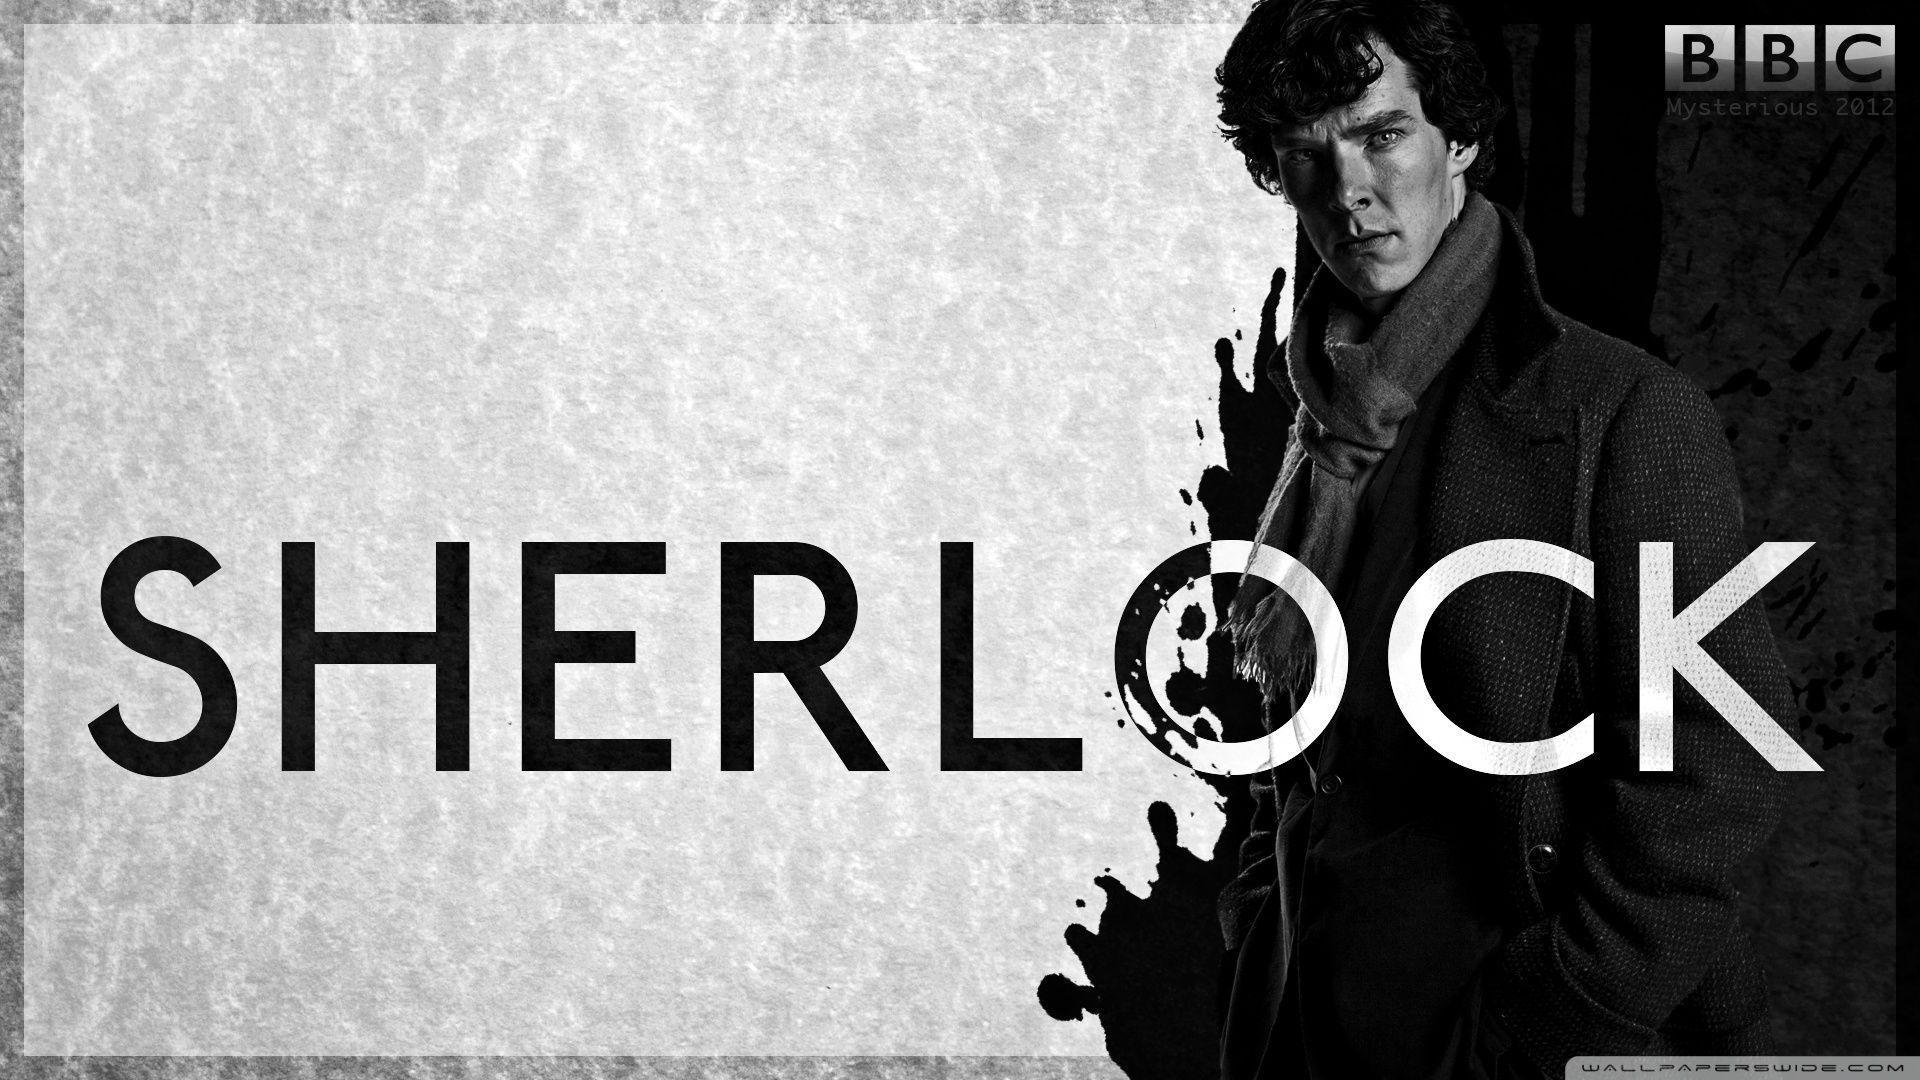 Sherlock HD desktop wallpaper : High Definition : Mobile